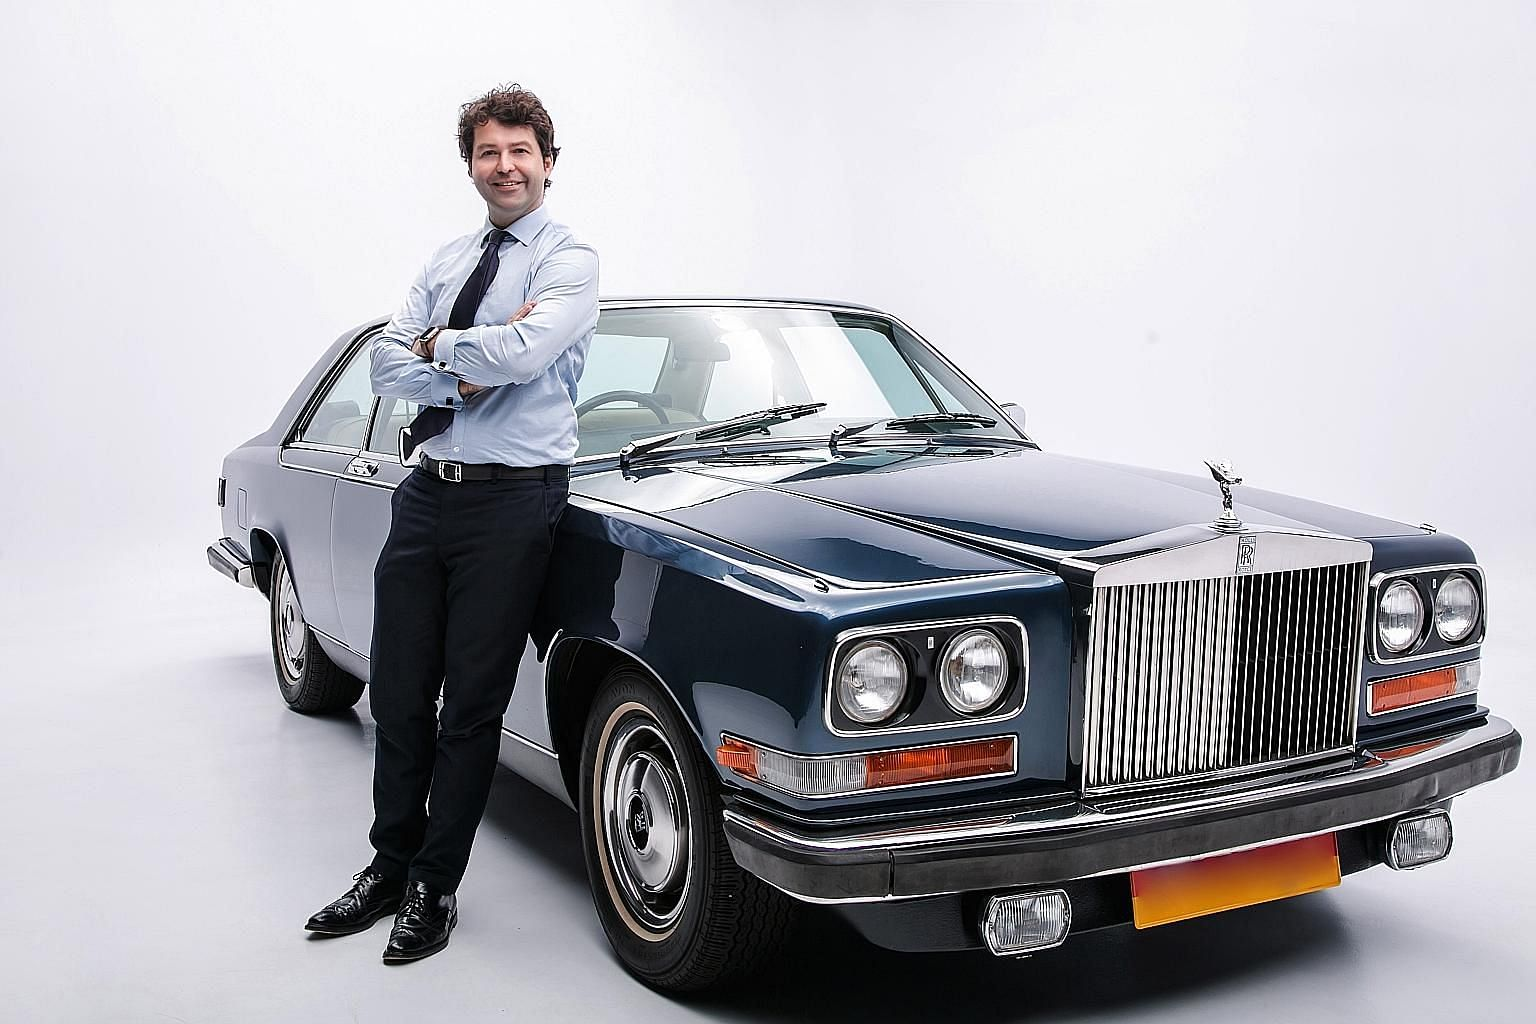 Mr Patrick Saurini imported the 1975 Rolls-Royce Camargue and had it registered as a classic last December.